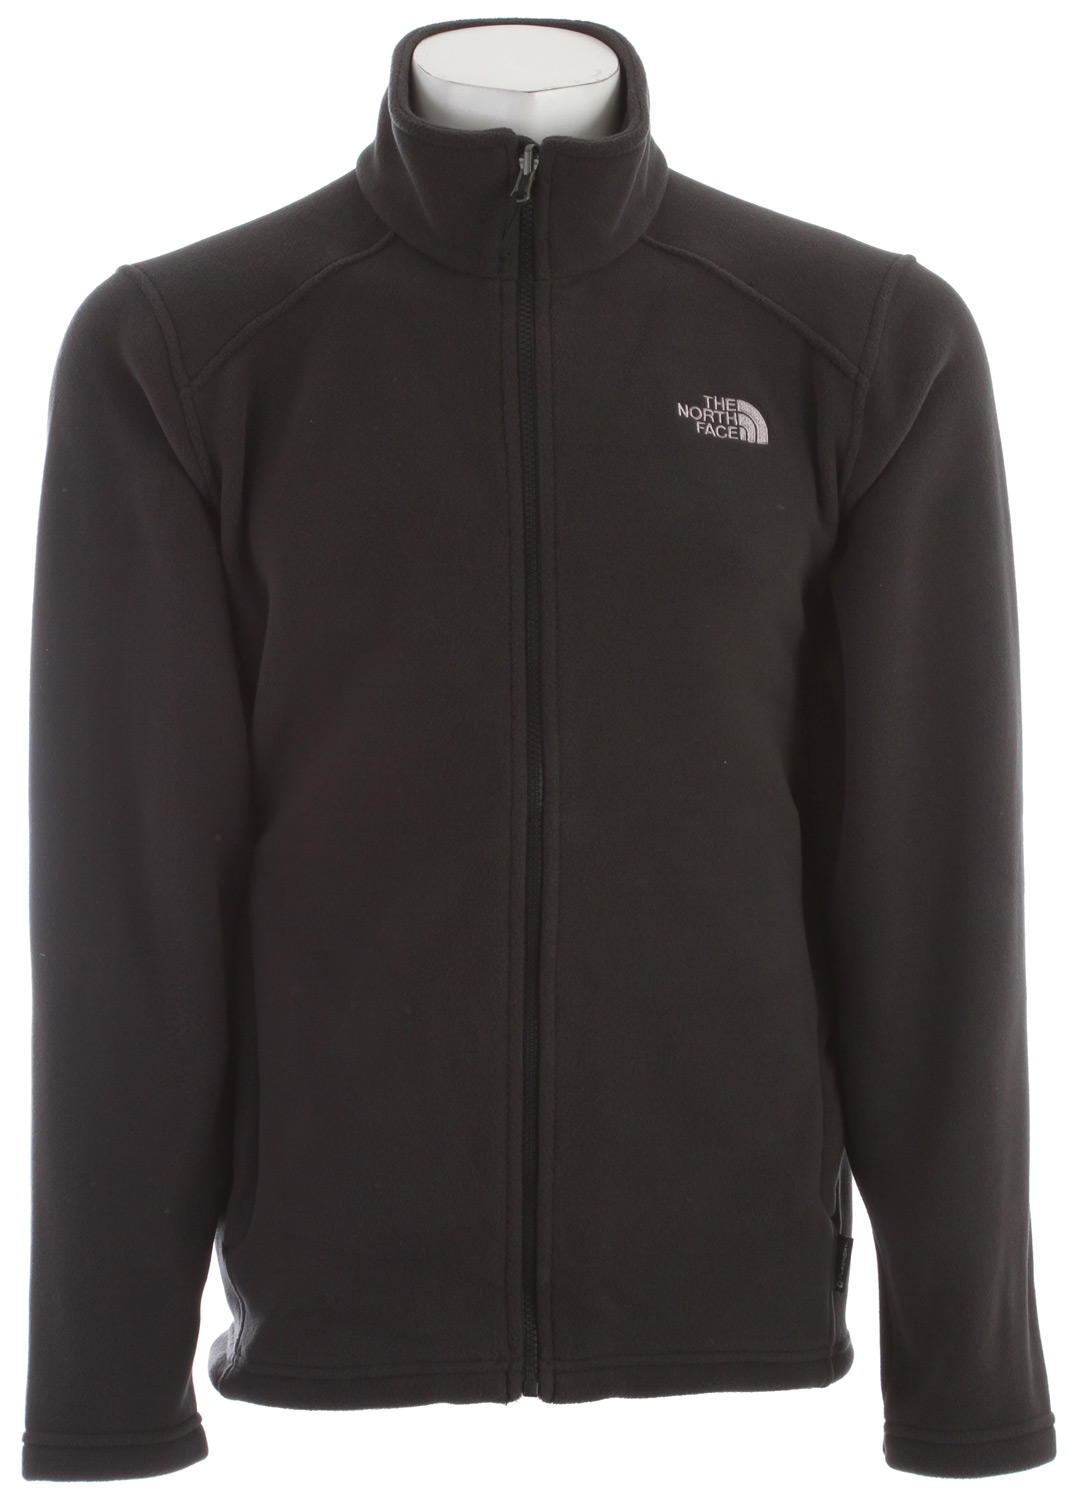 "A heavyweight, rapid-drying fleece designed to be worn alone or layered on active adventures in colder weather. Features The North Face FlashDry technology, which works with your body to improve dry time. Key Features of The North Face RDT 300 Fleece: 300-weight fleece with FlashDry fibers to increase dry time Zip-in compatible integration with complementing garments from The North Face Two secure hand pockets Hem cinch-cord Avg weight: 455 g (16.05 oz) Center back: 28.5"" Fabric: RDT 300-weight fleece with FlashDry - $94.95"